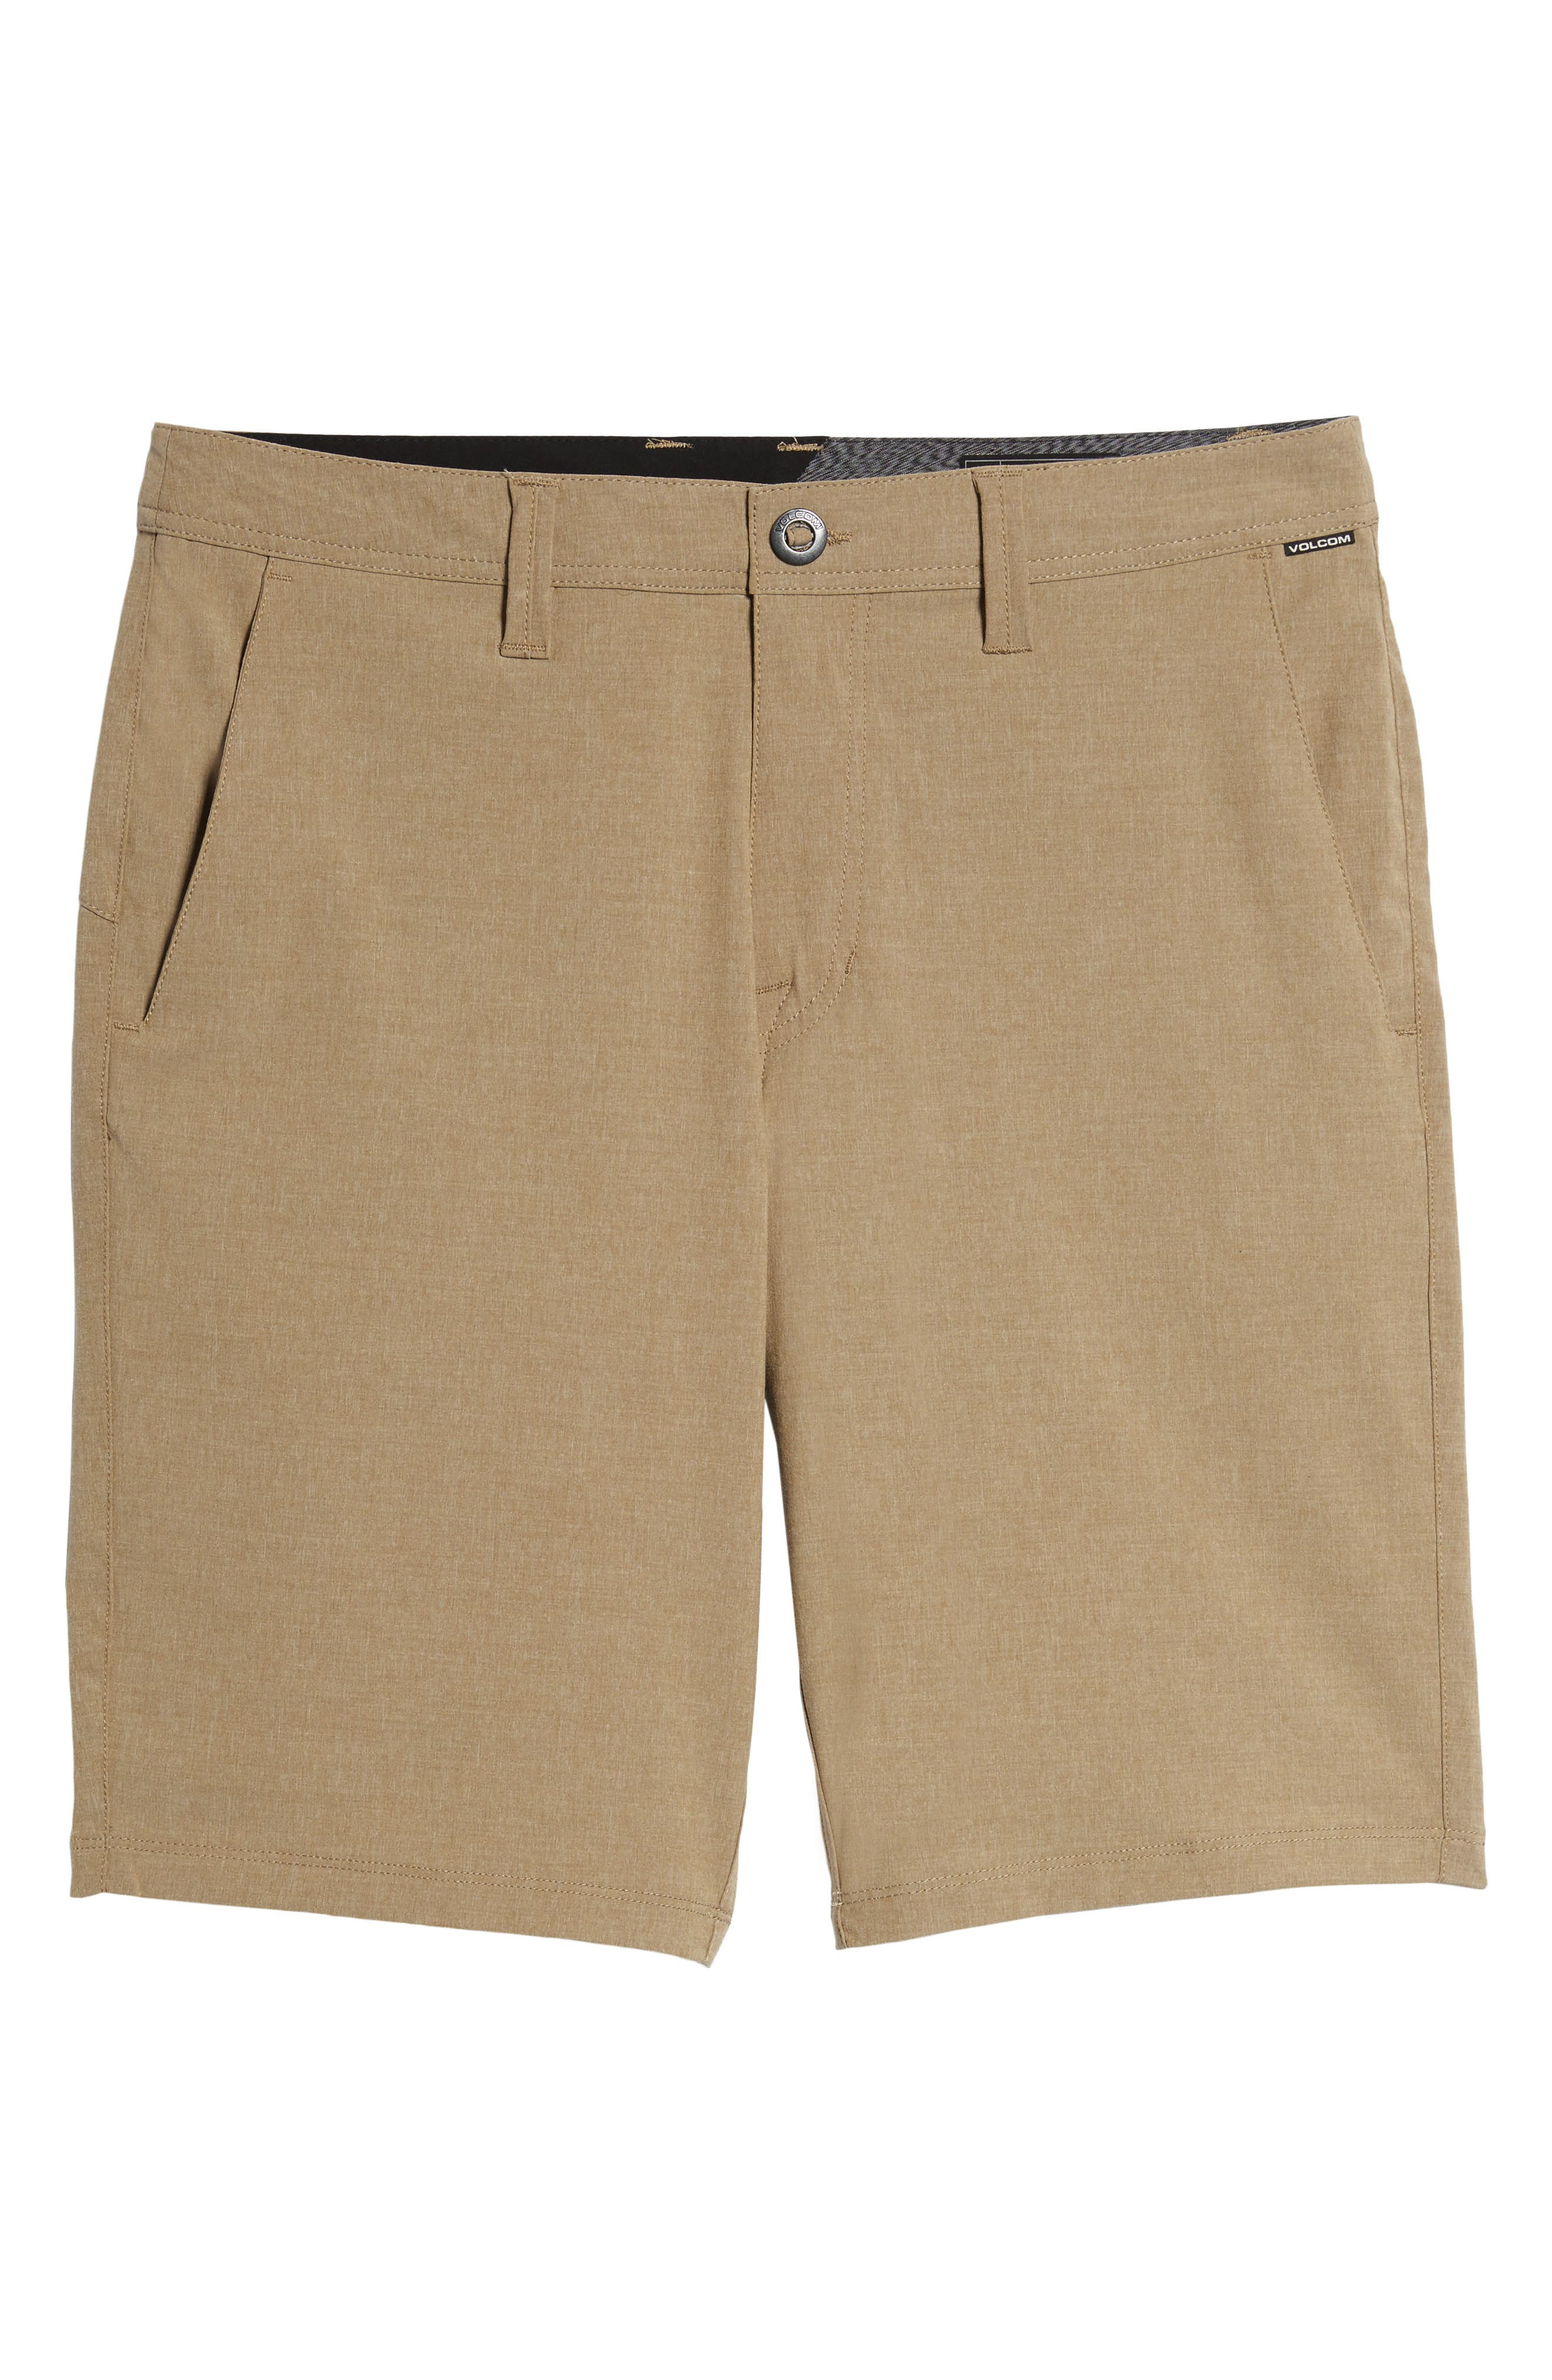 Hybrid Shorts,                             Alternate thumbnail 6, color,                             Beige